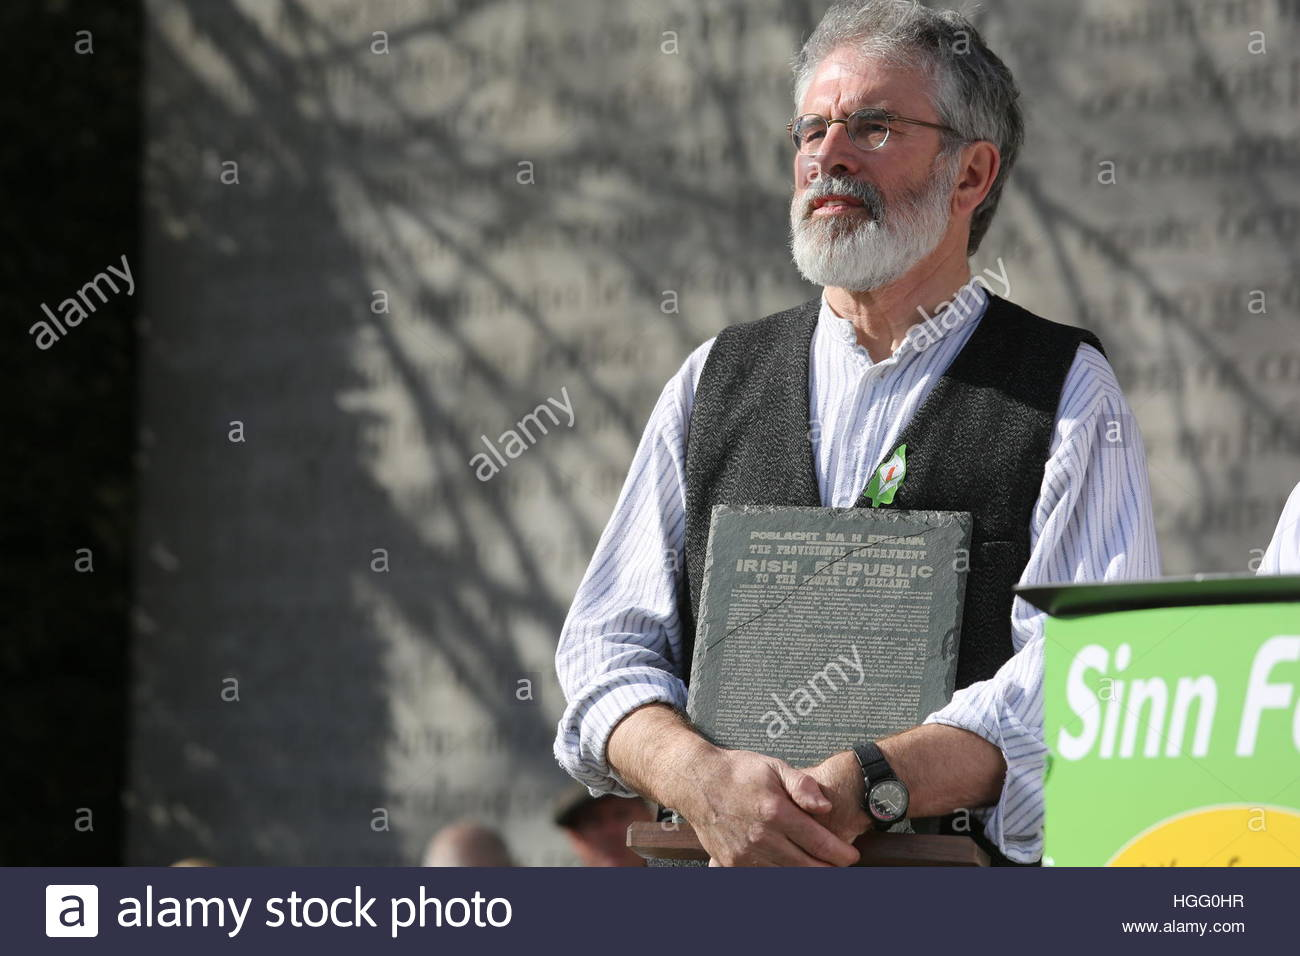 Gerry Adams, Sinn Féin president, takes part in the Arbour Hill event during the anniversary of 1916 - Stock Image